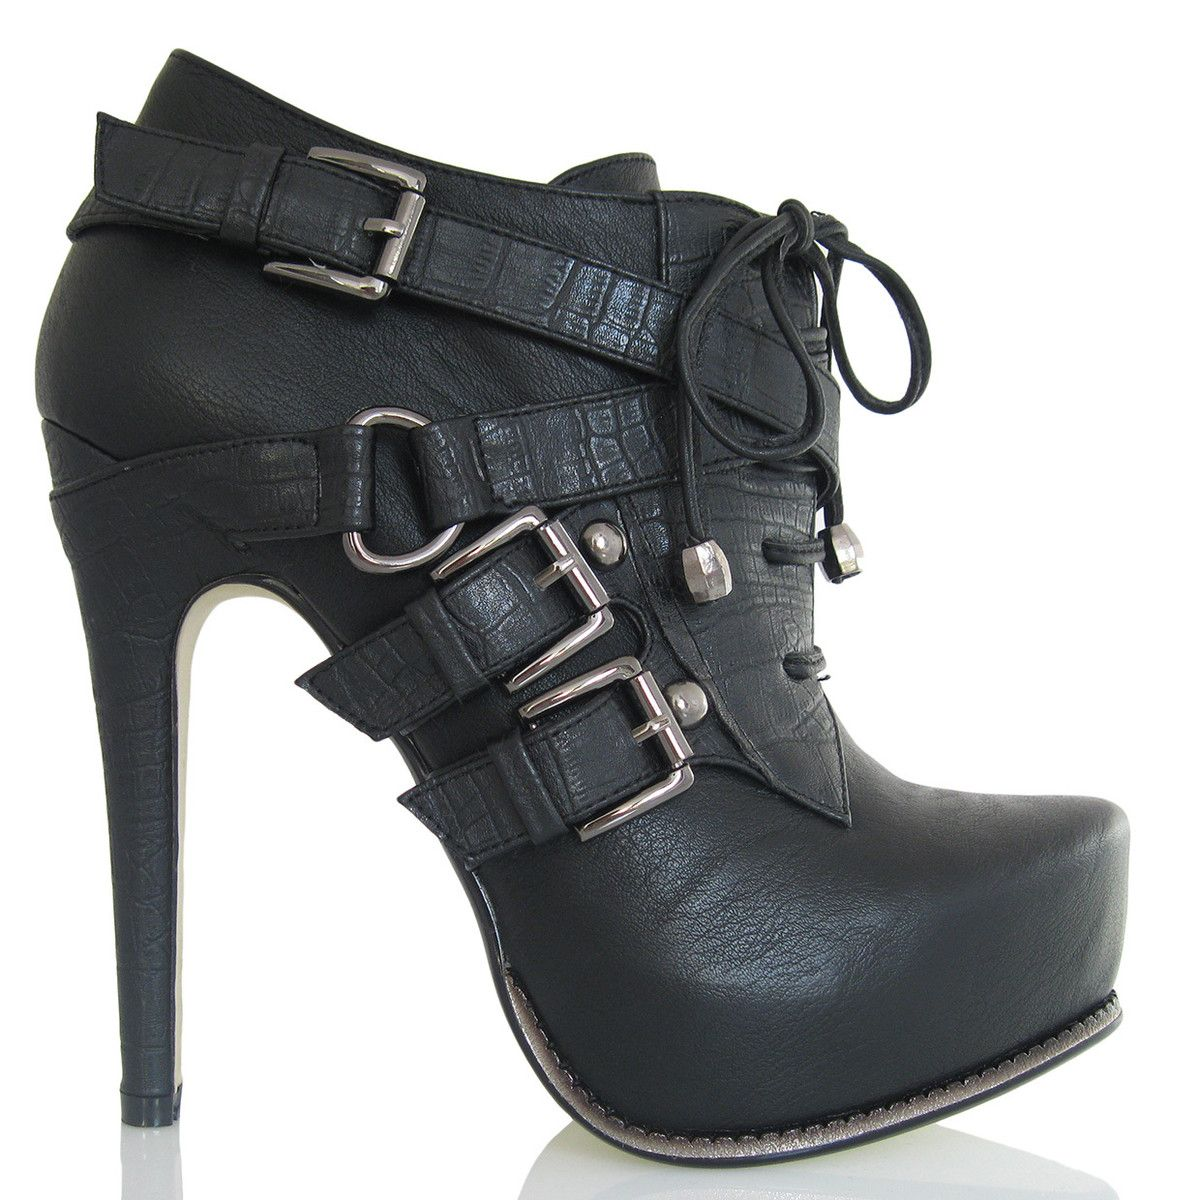 madame deluxe ankle boot shoes pinterest weiss. Black Bedroom Furniture Sets. Home Design Ideas